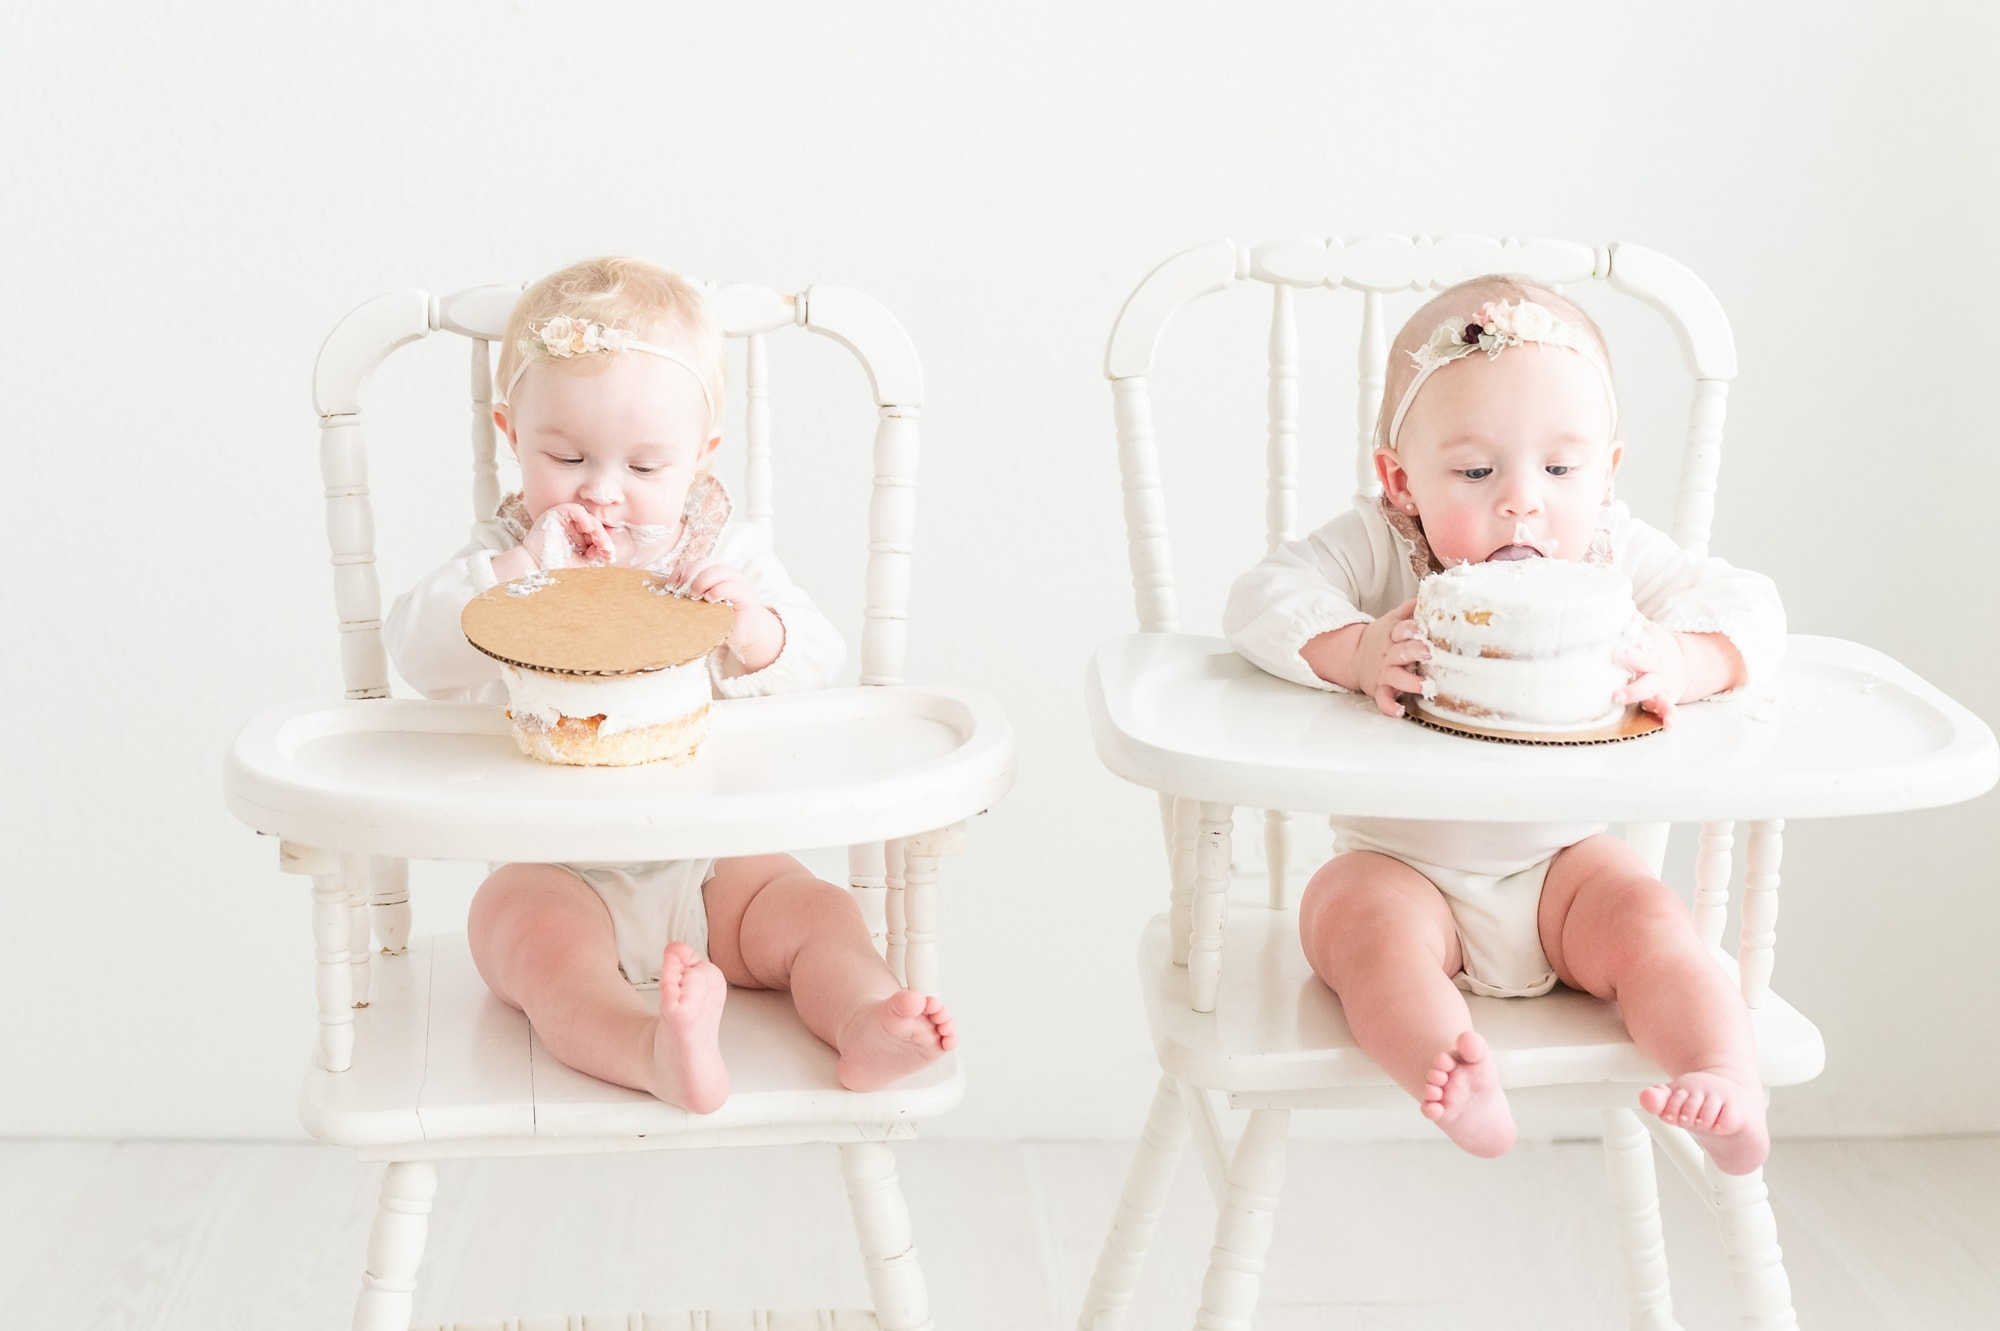 Twins eating cake during first birthday cake smash session in Dallas. Photo by Aimee Hamilton Photography.